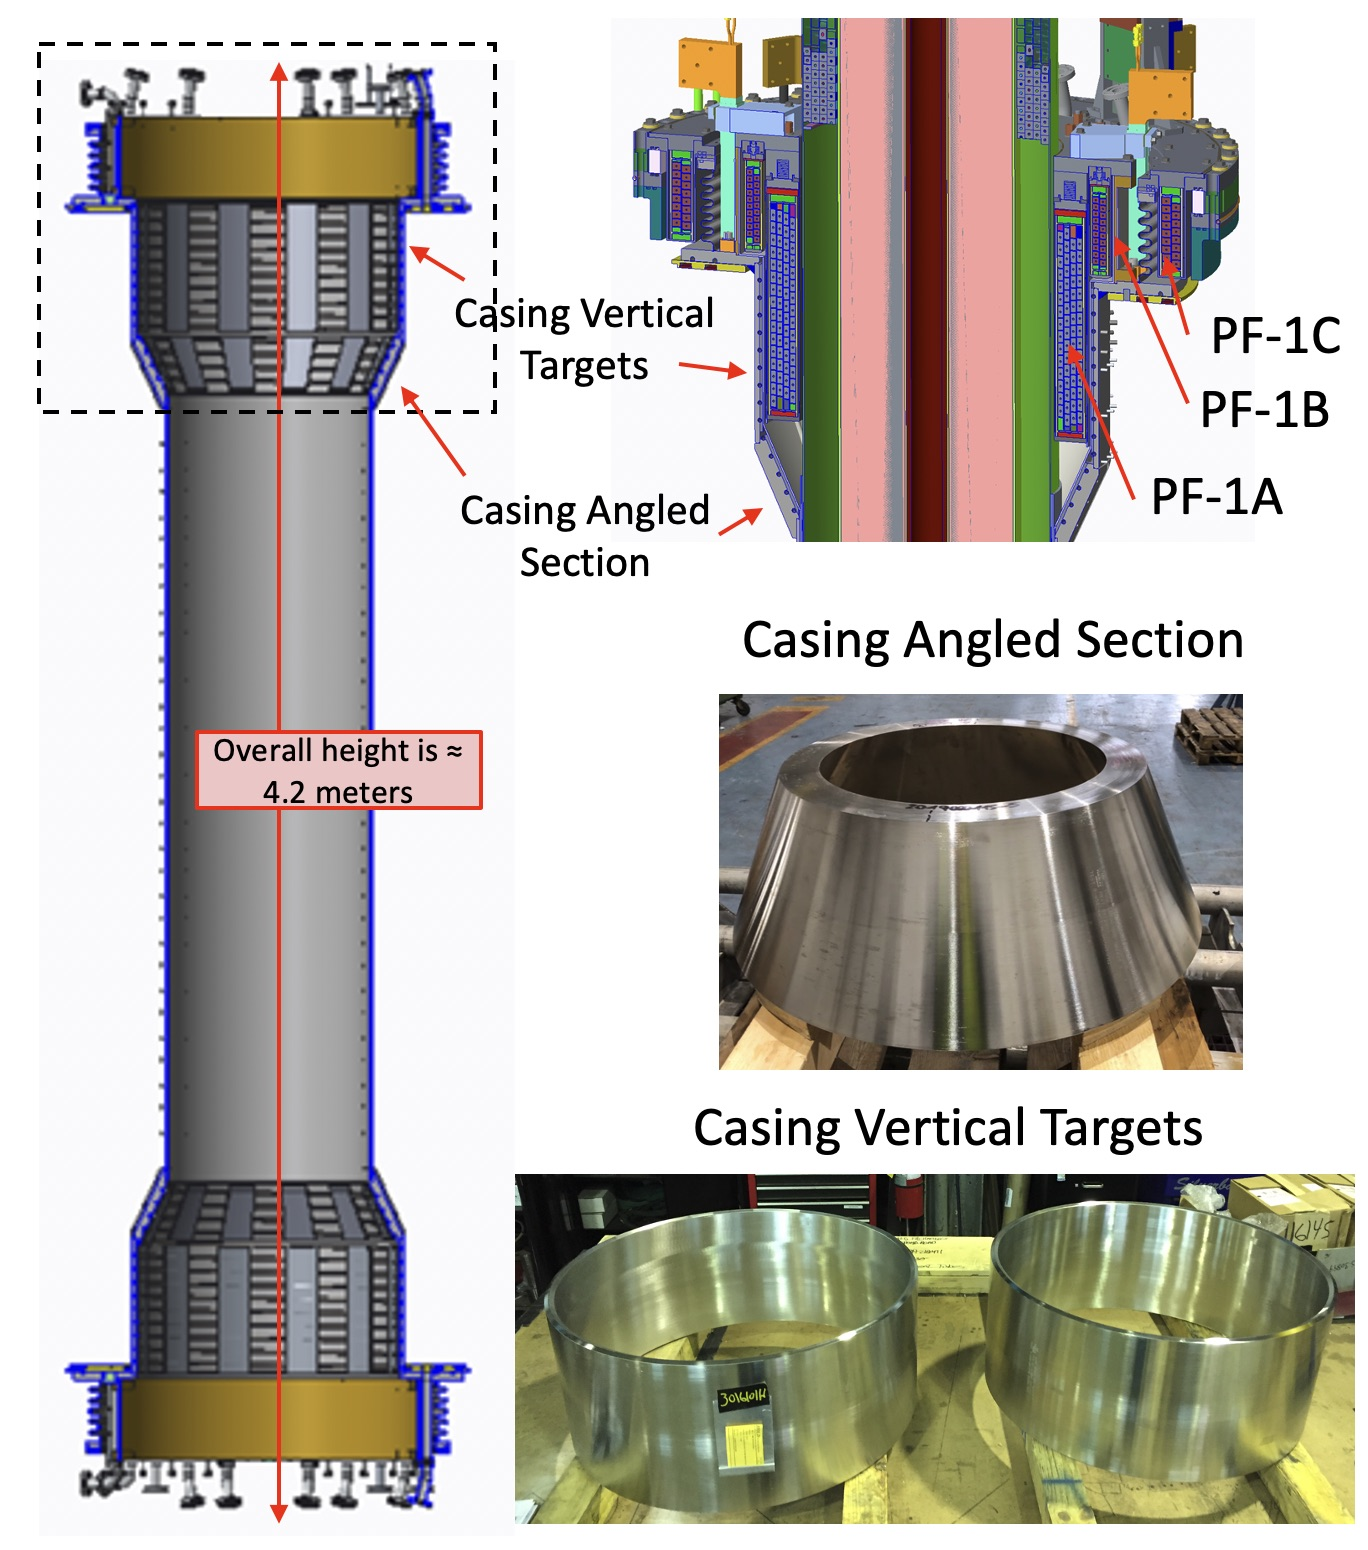 Fig. 2: Design of the center-stack assembly and completed forgings